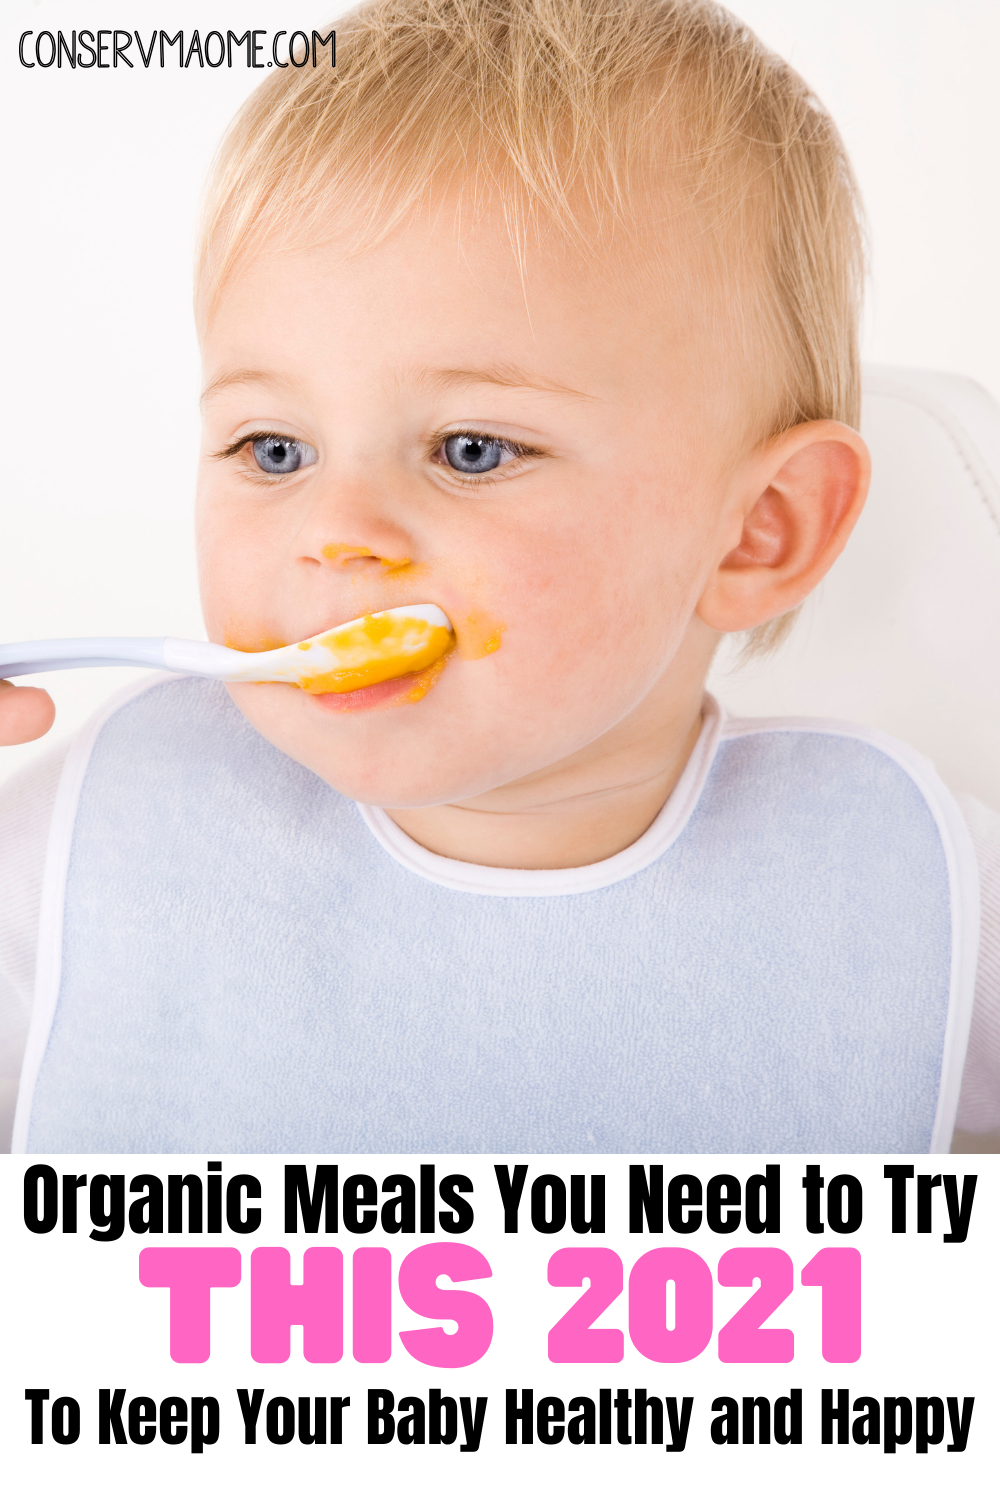 Organic meals you need to try this 2021 to keep your baby healthy and happy.